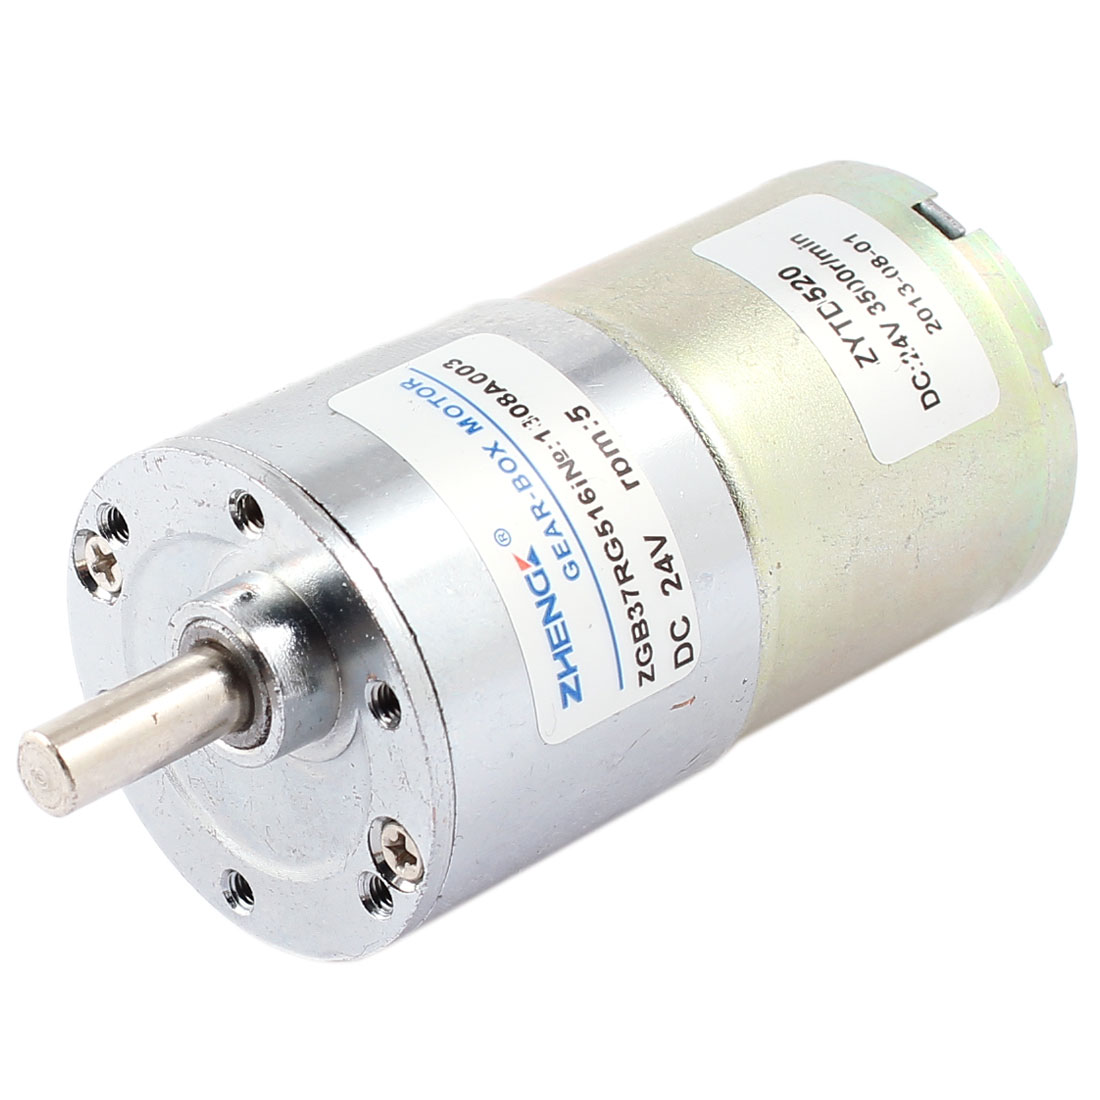 DC 24V 5 RPM Metal Permanent Speed Reducing Geared Box Motor